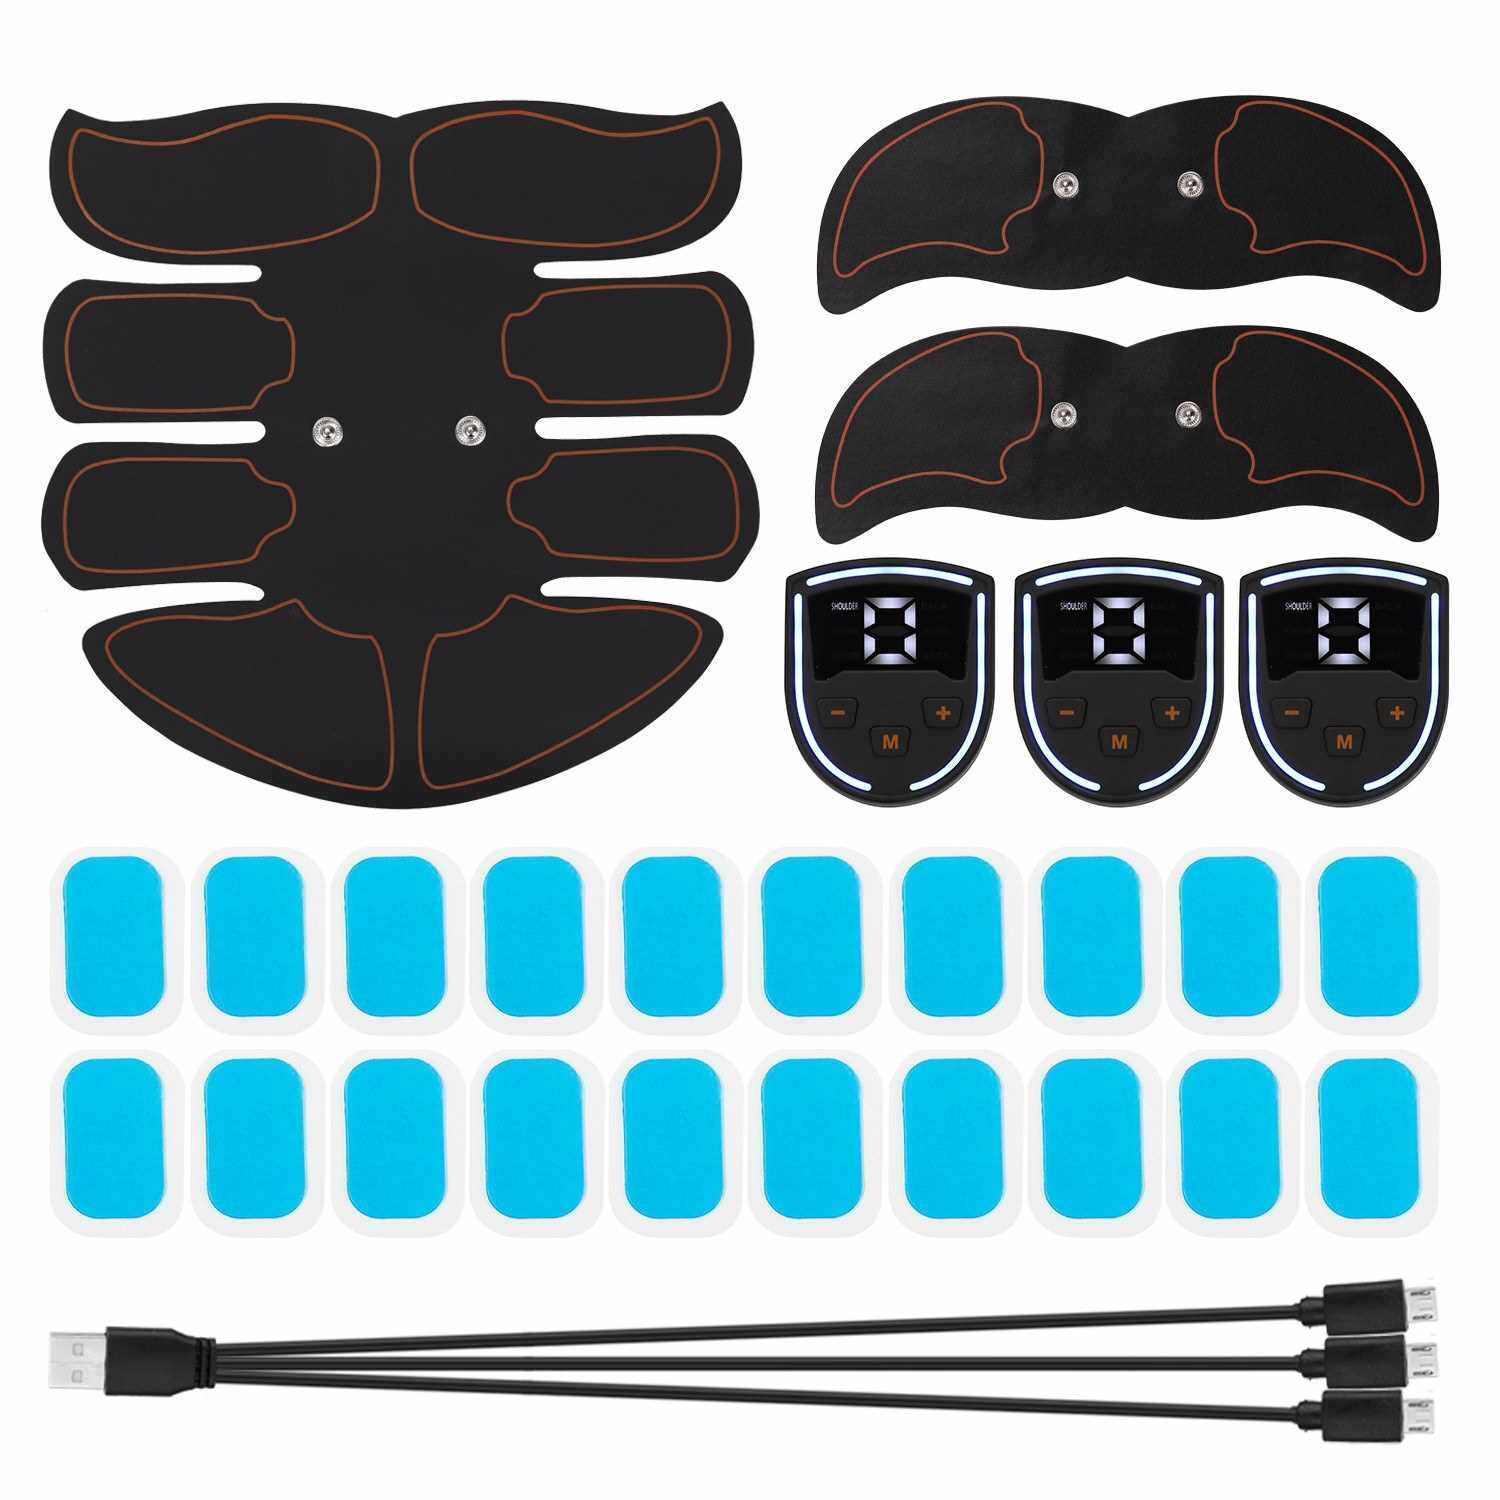 Muscle Trainer Abdominal Muscle Electrostimulation Multifunctional Fitness Accessories ABS Sculpting Massager Pad Home Gym Belly Arm Leg Massagers (Standard)